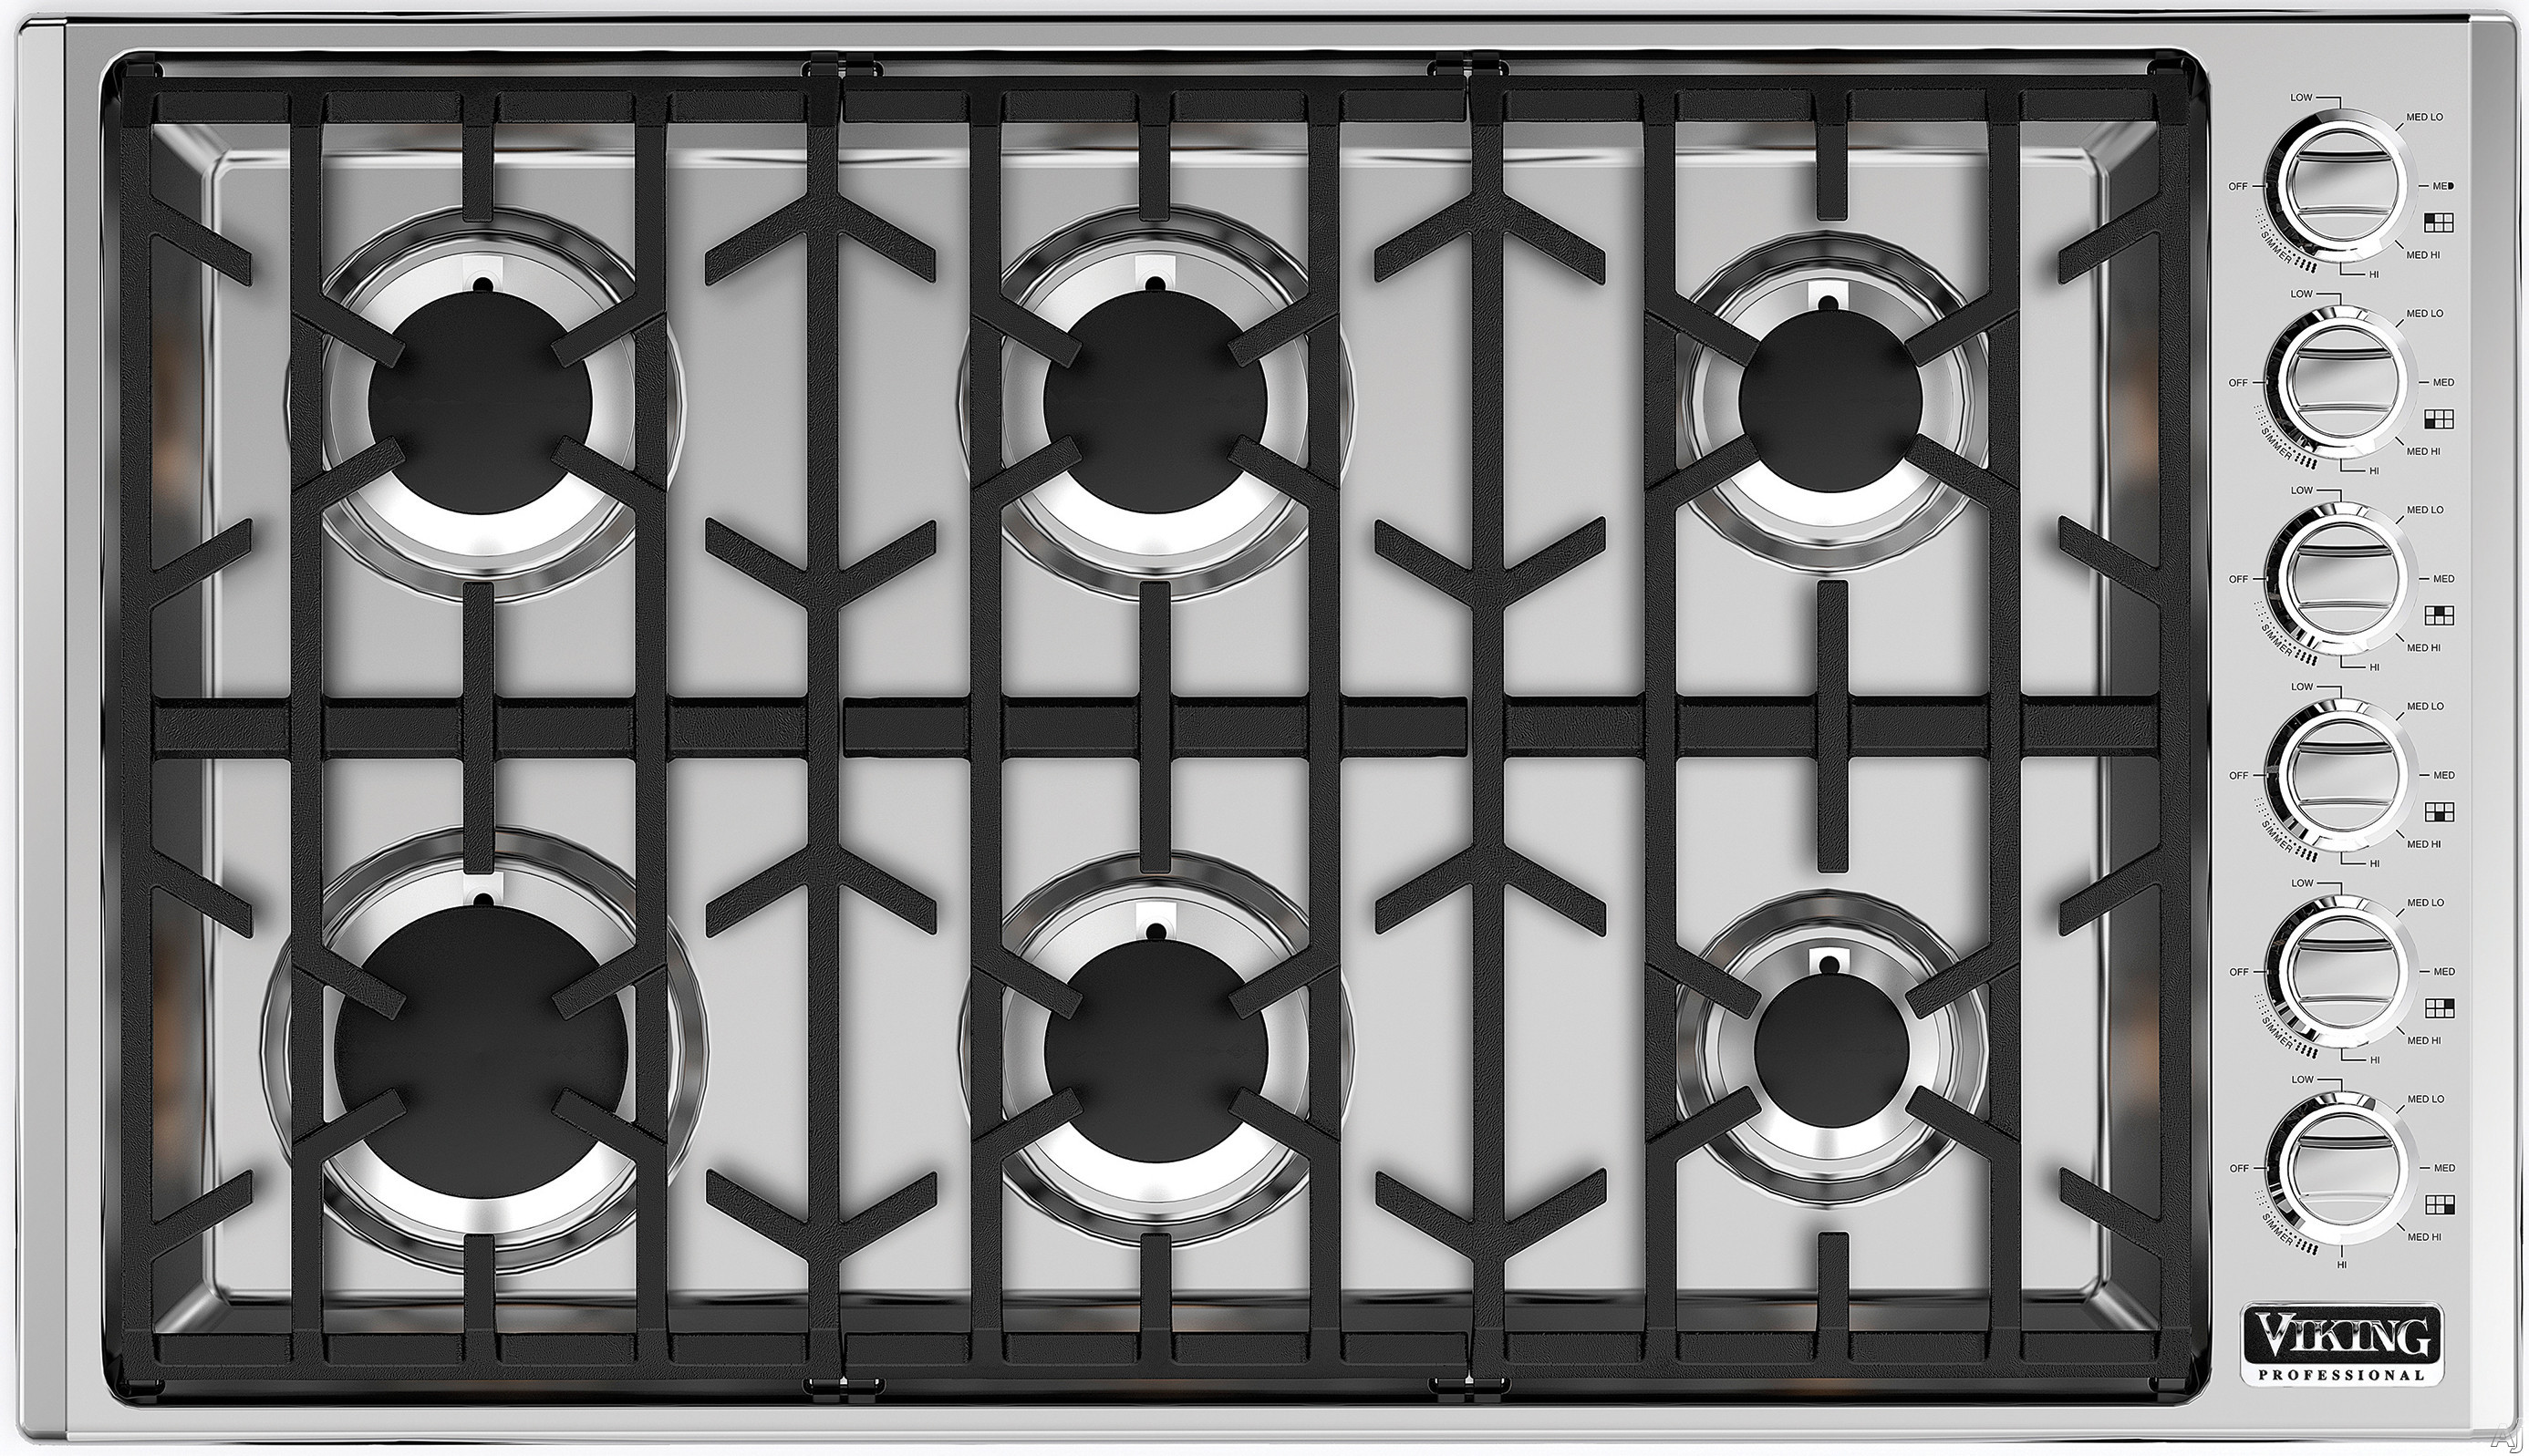 Viking Professional 5 Series VGSU5366BSS 36 Inch Gas Cooktop with Continuous Grates, Child-Proof Knobs, SureSpark Ignition, 6 Sealed Burners and 18,000 BTU: Natural Gas